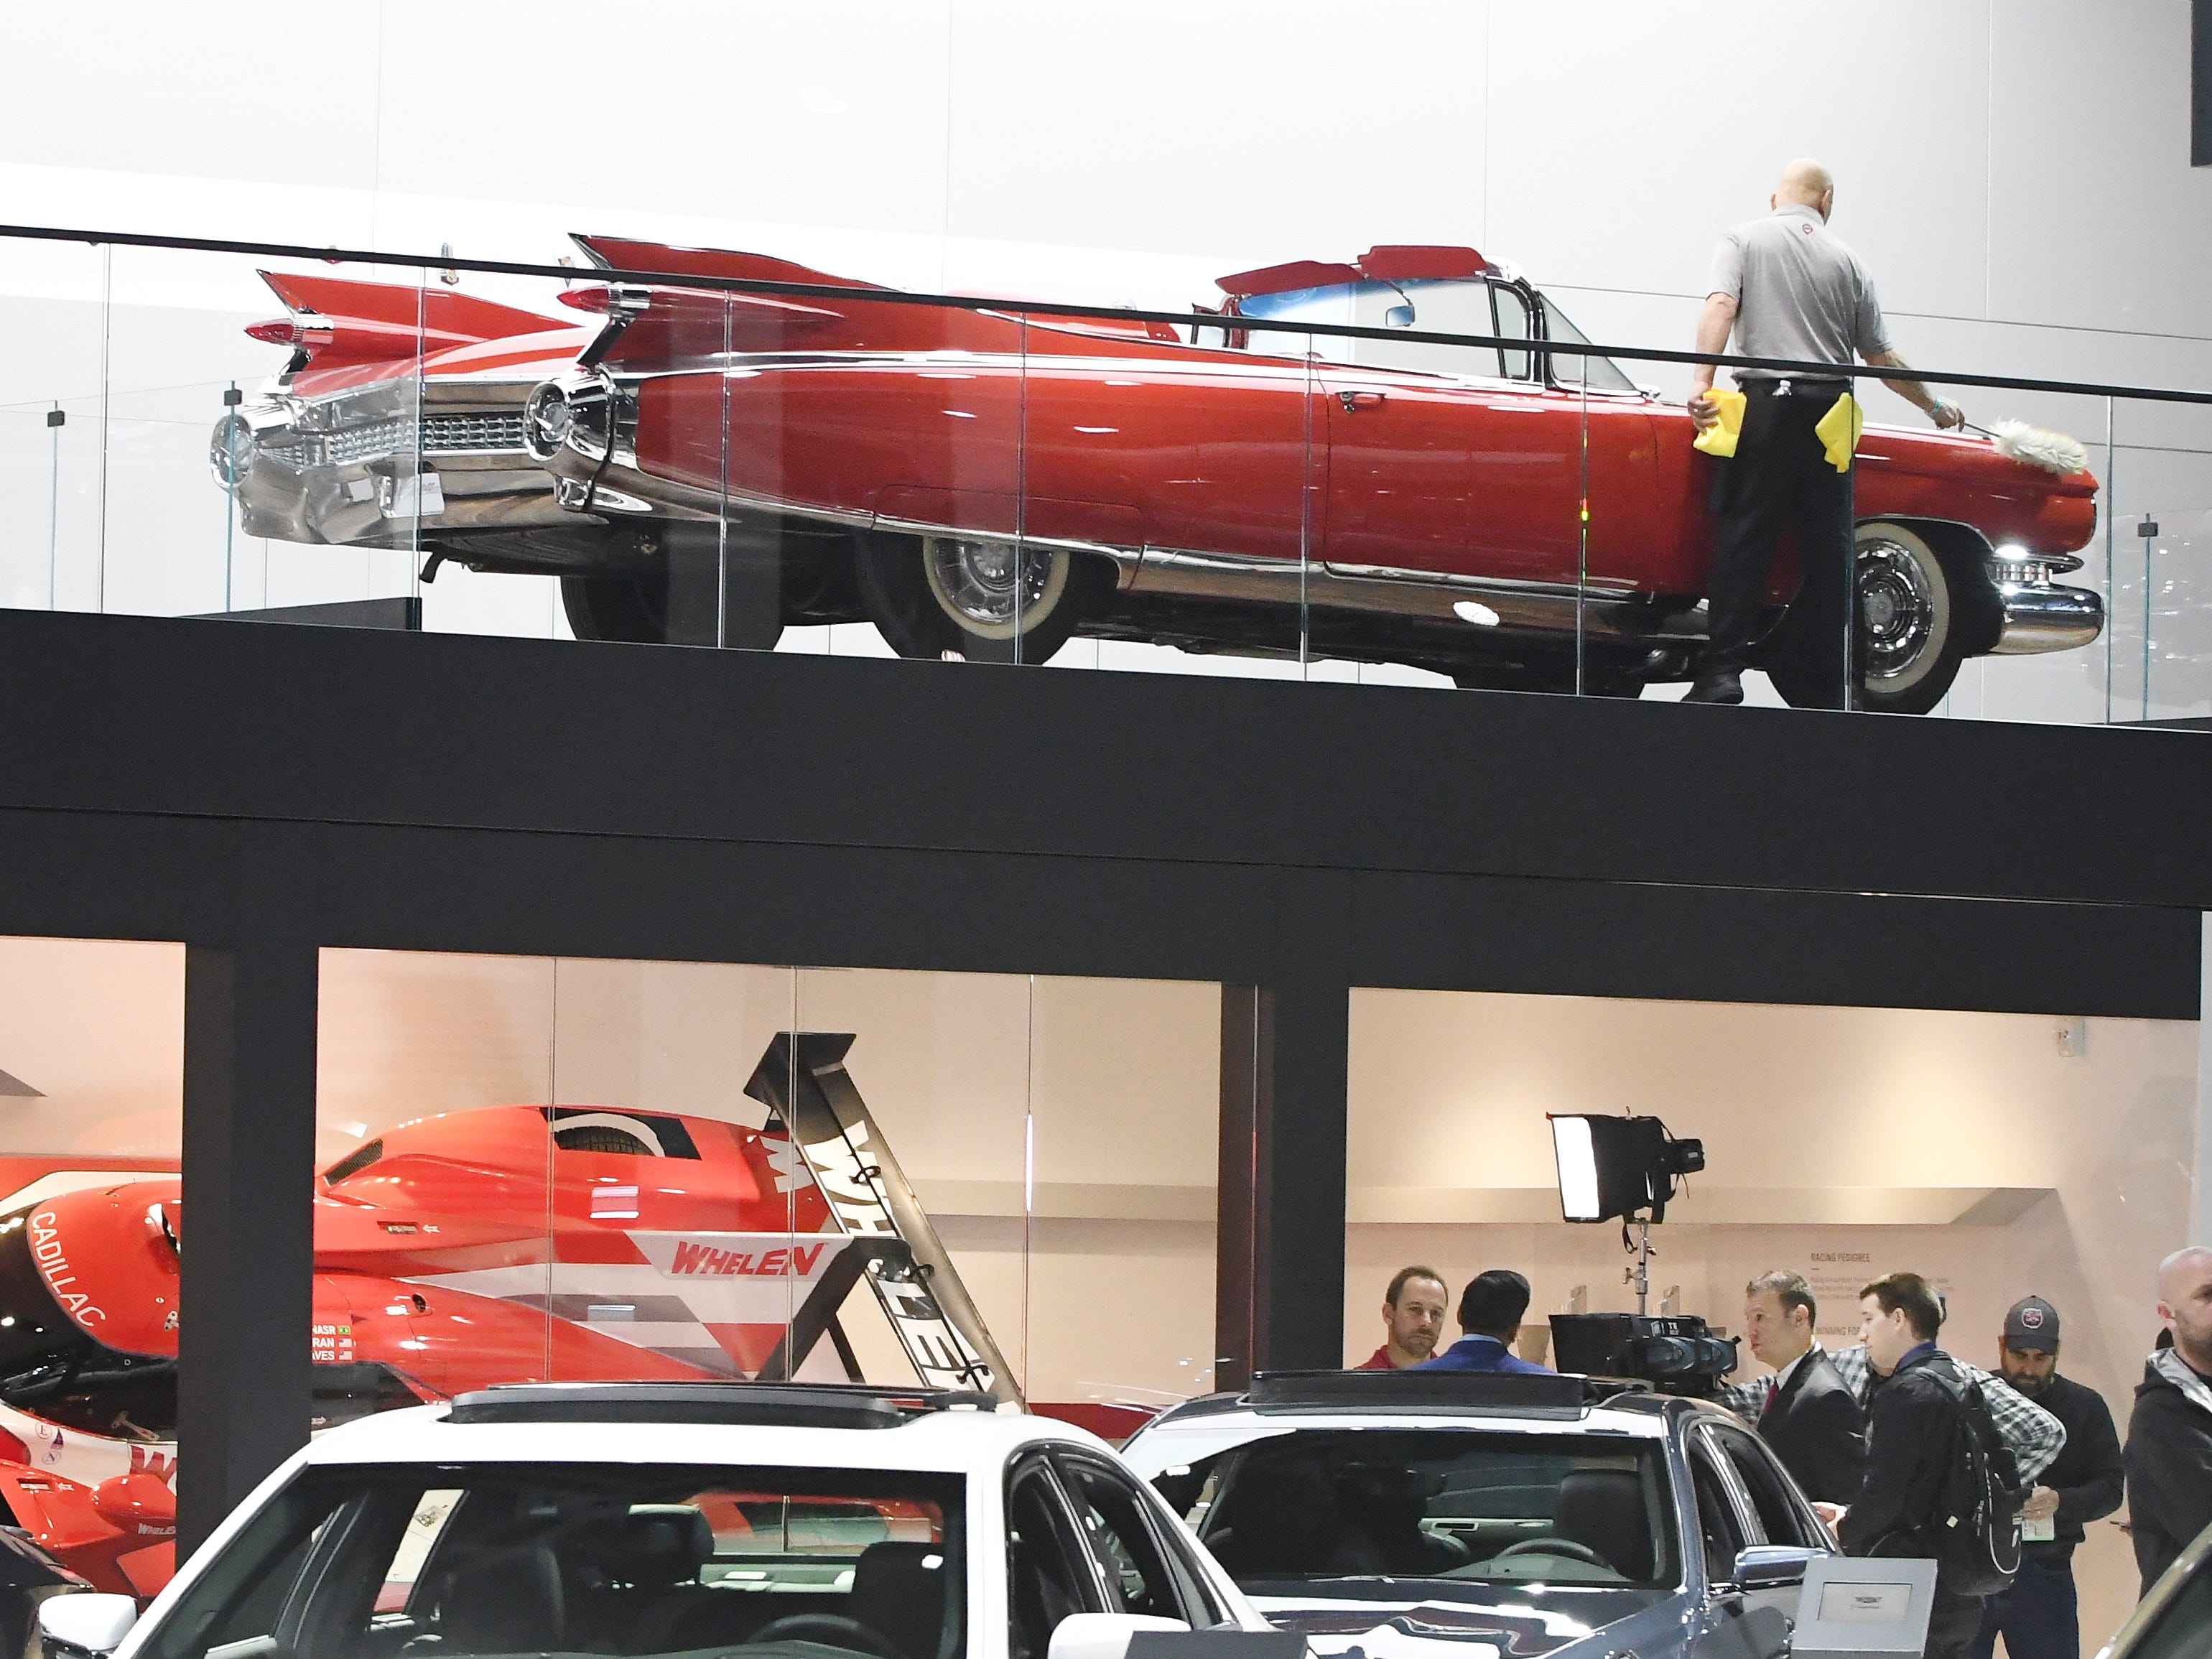 A worker dusts off a 1959 Eldorado in the Cadillac display.